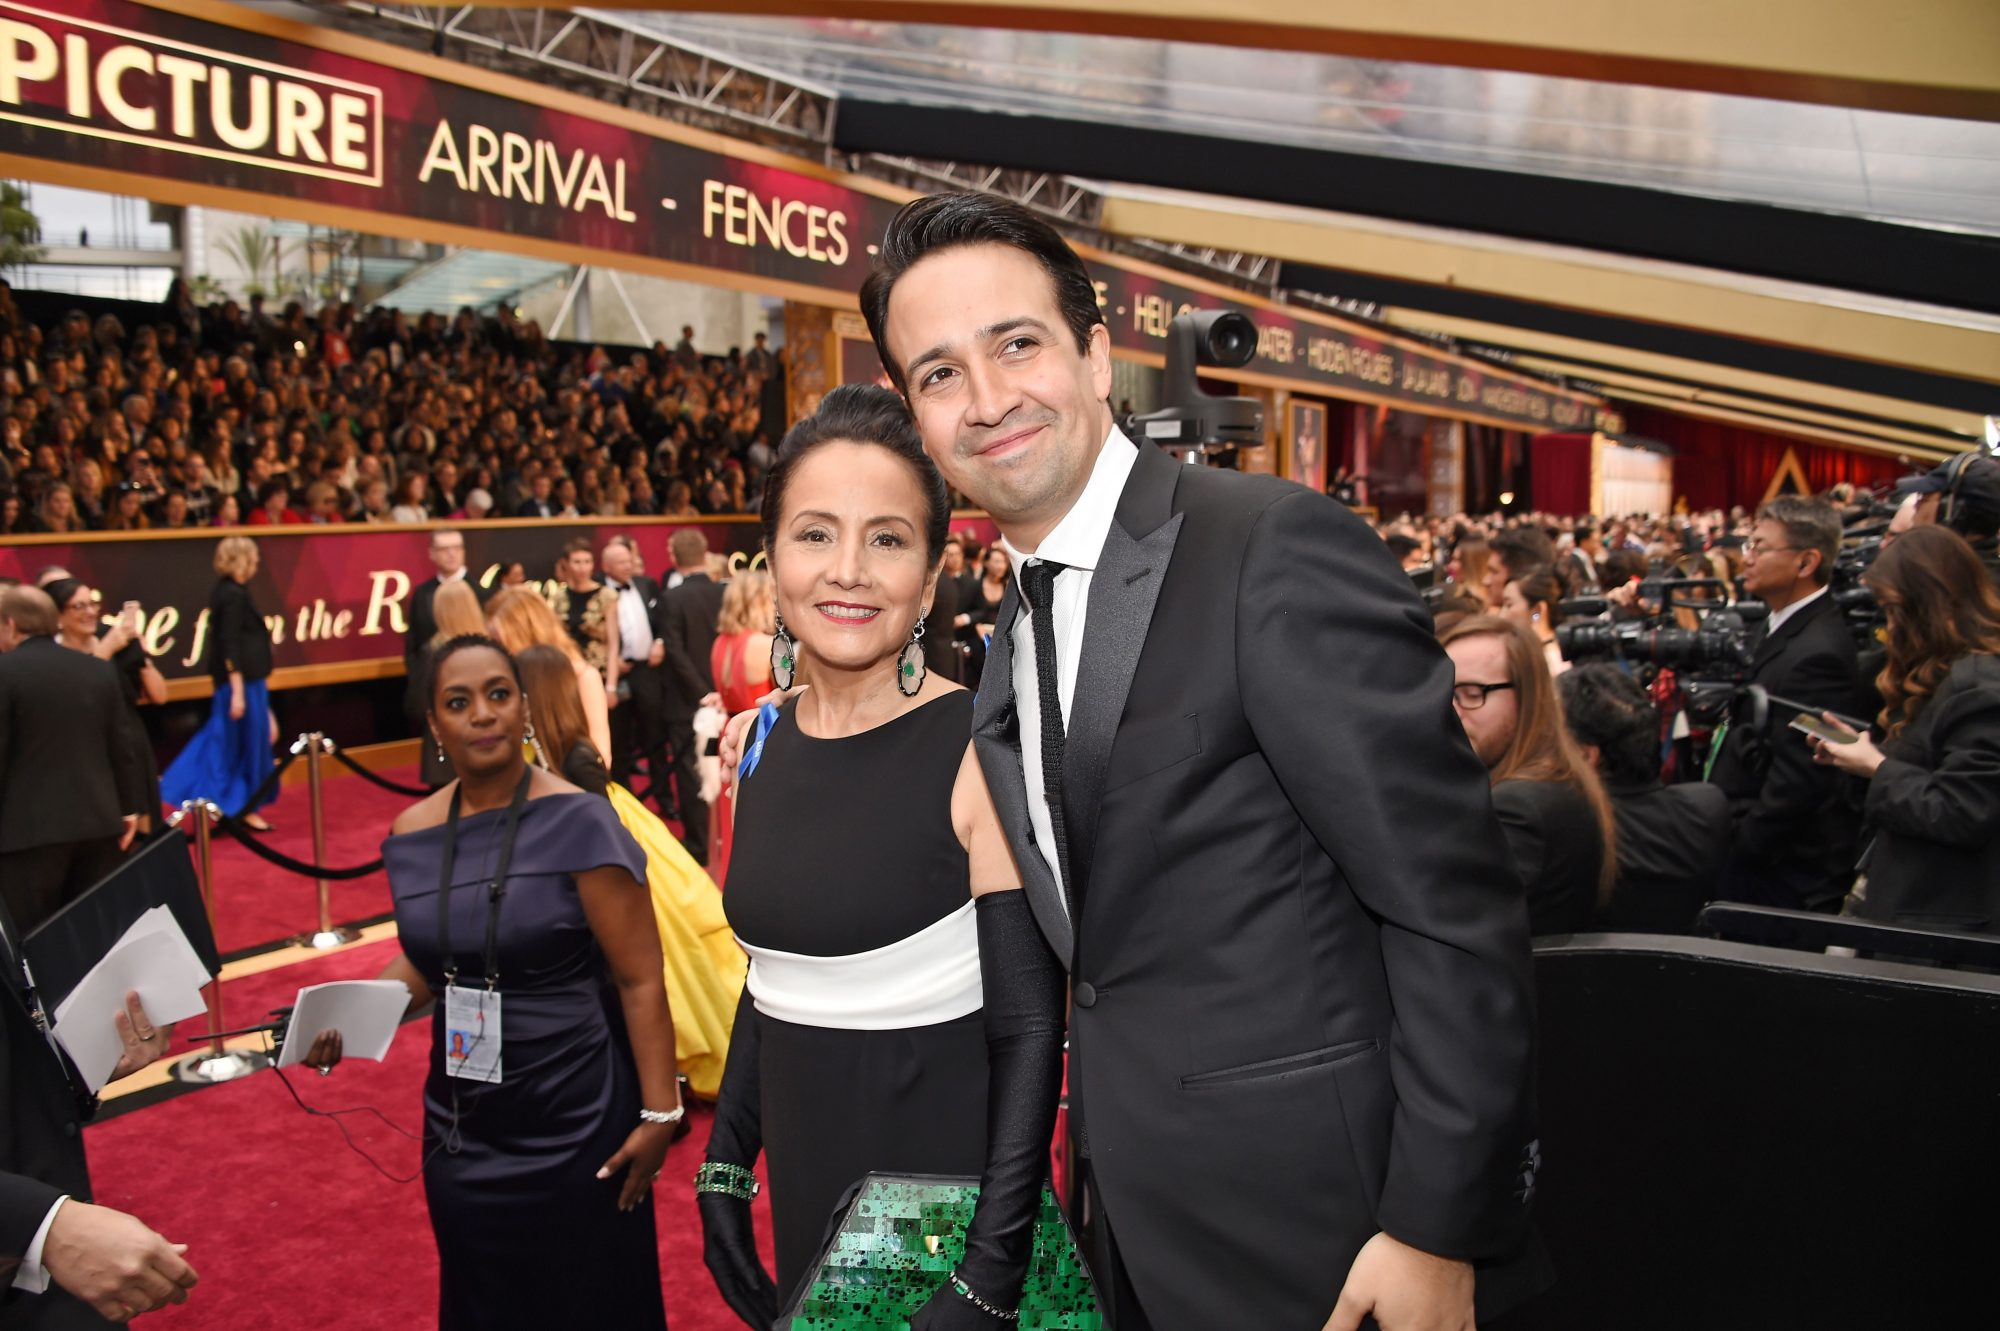 US-ENTERTAINMENT-OSCARS-RED CARPET